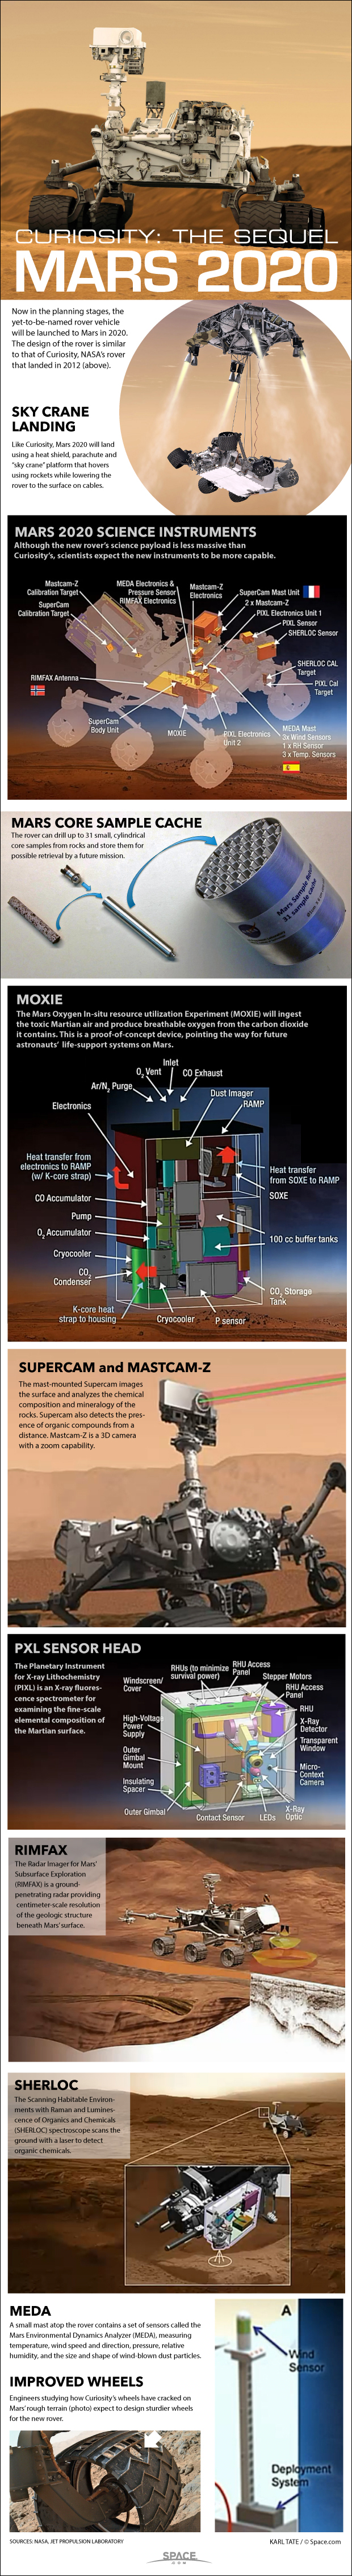 How NASA's Mars 2020 Rover Will Work (Infographic)